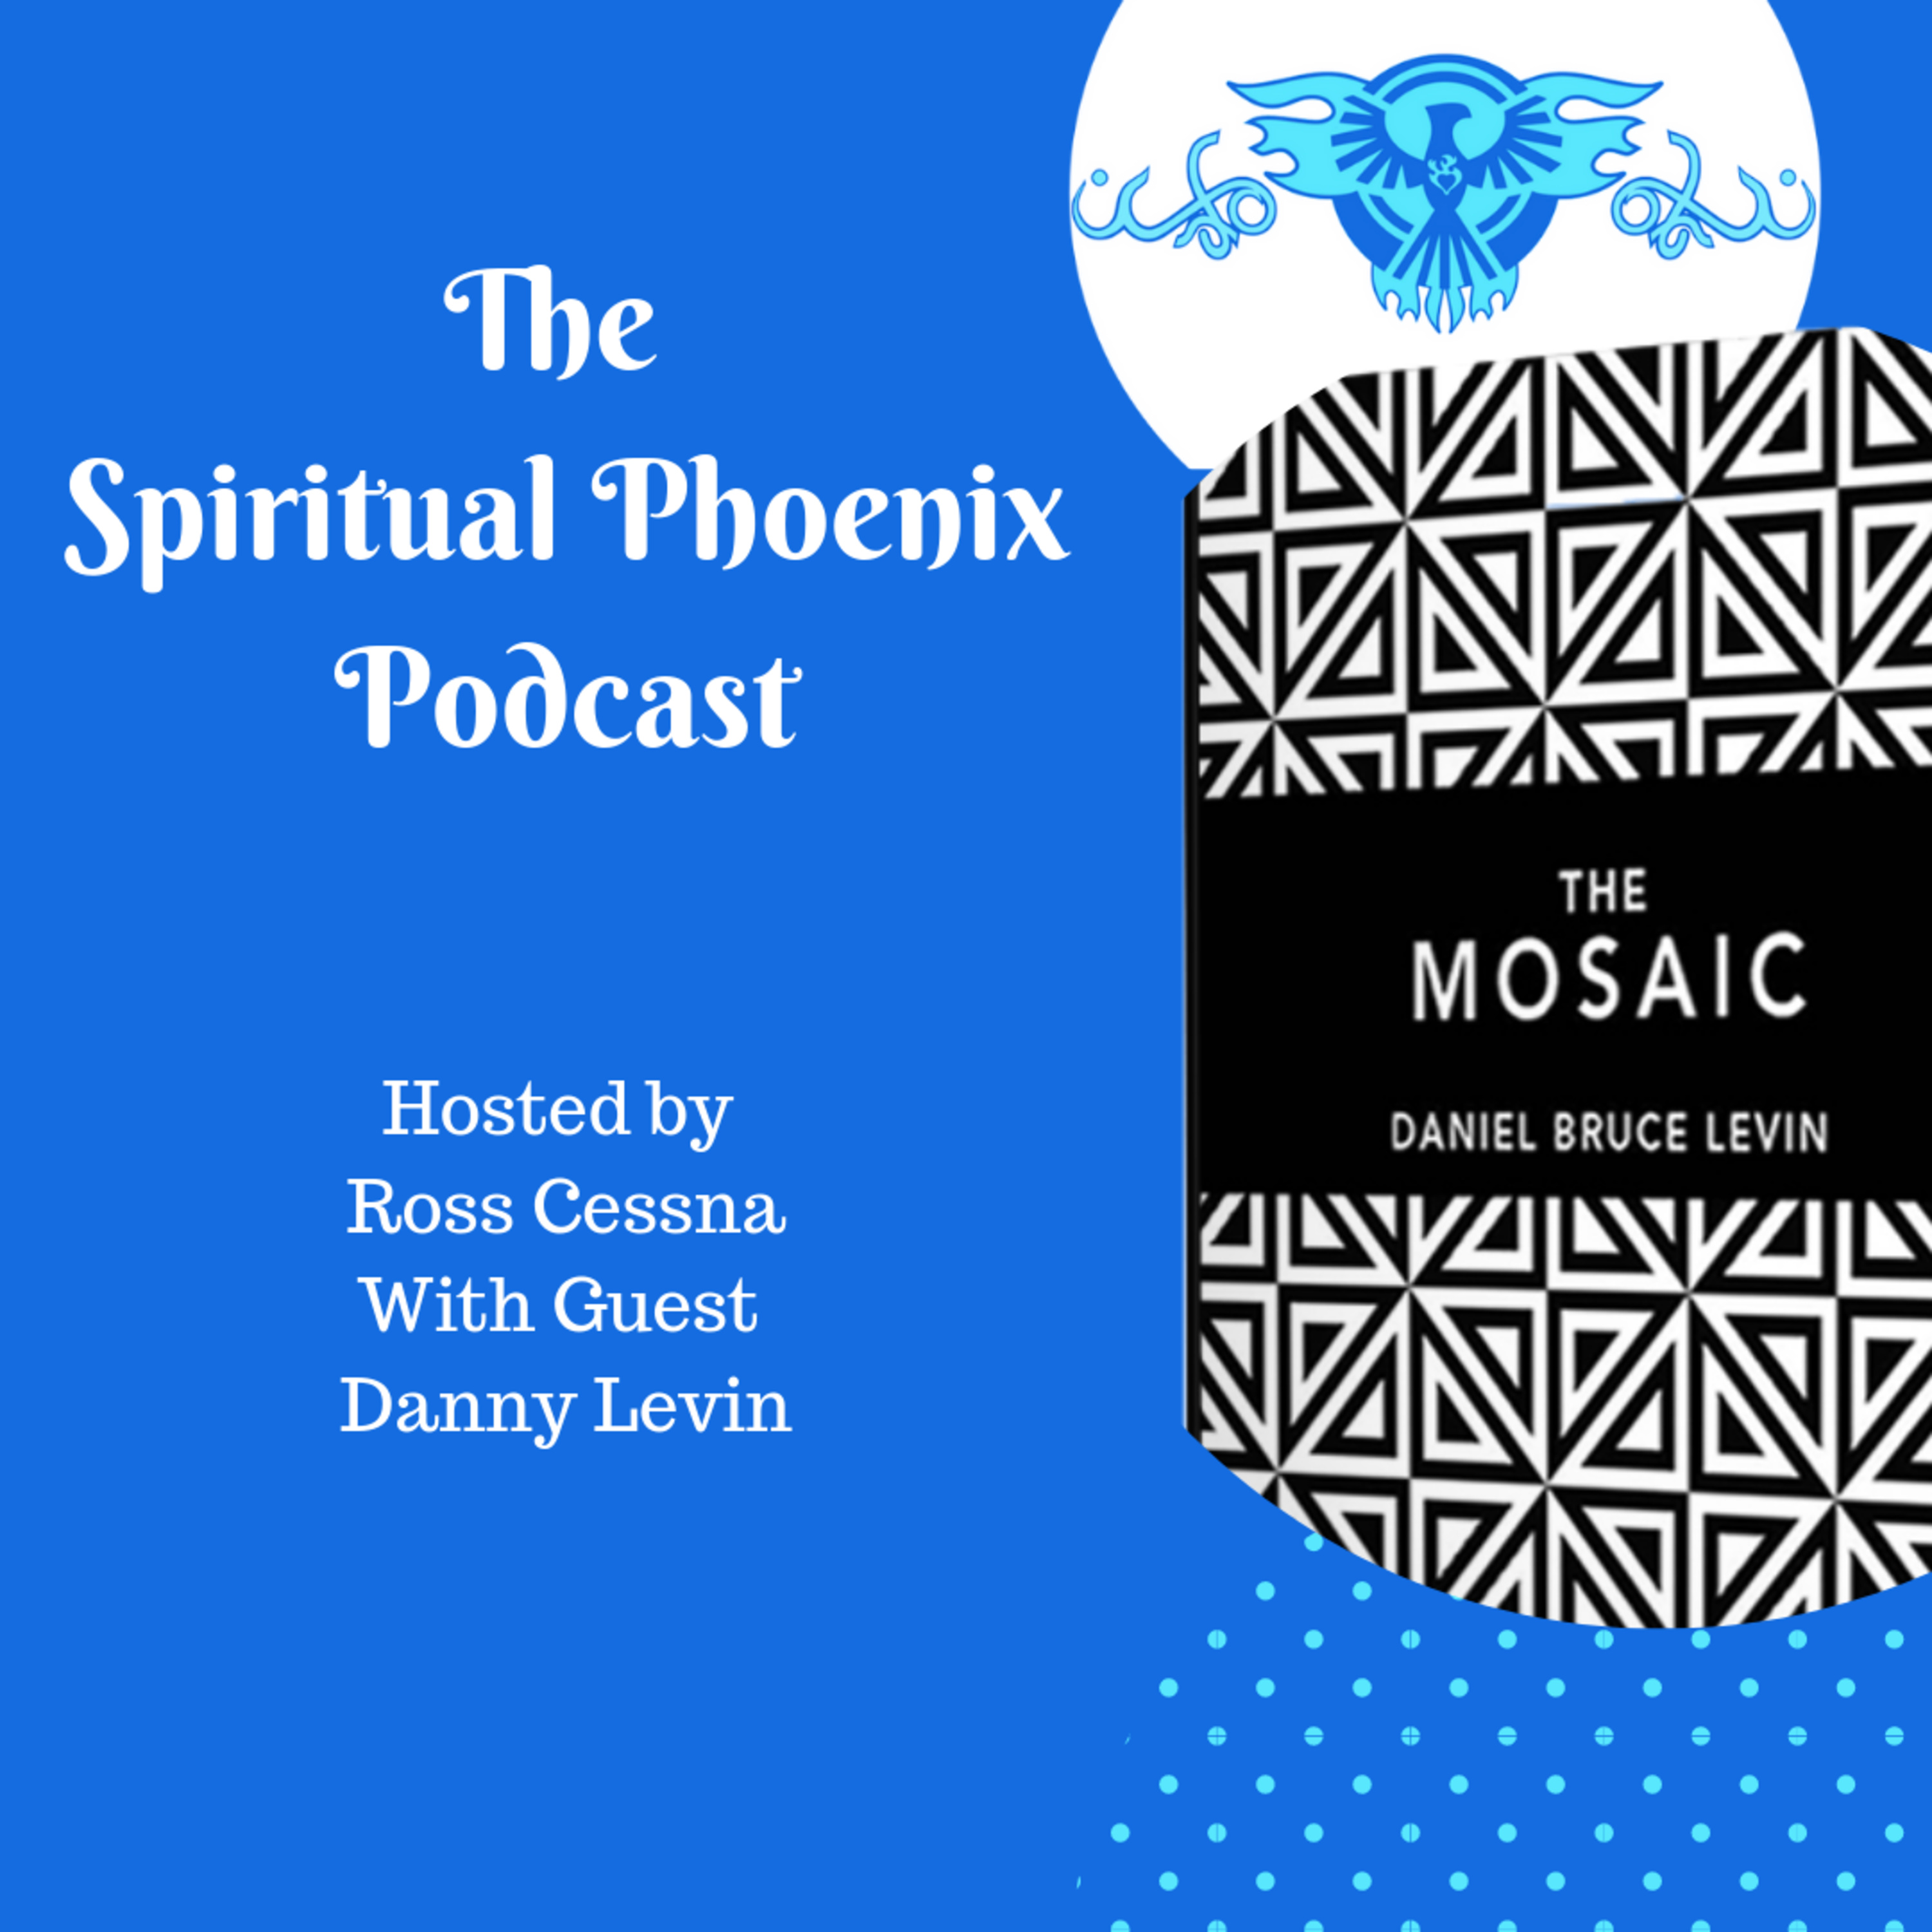 Danny Levin | The Mosaic, Compassion, Connection, walking your own path and writing your own story